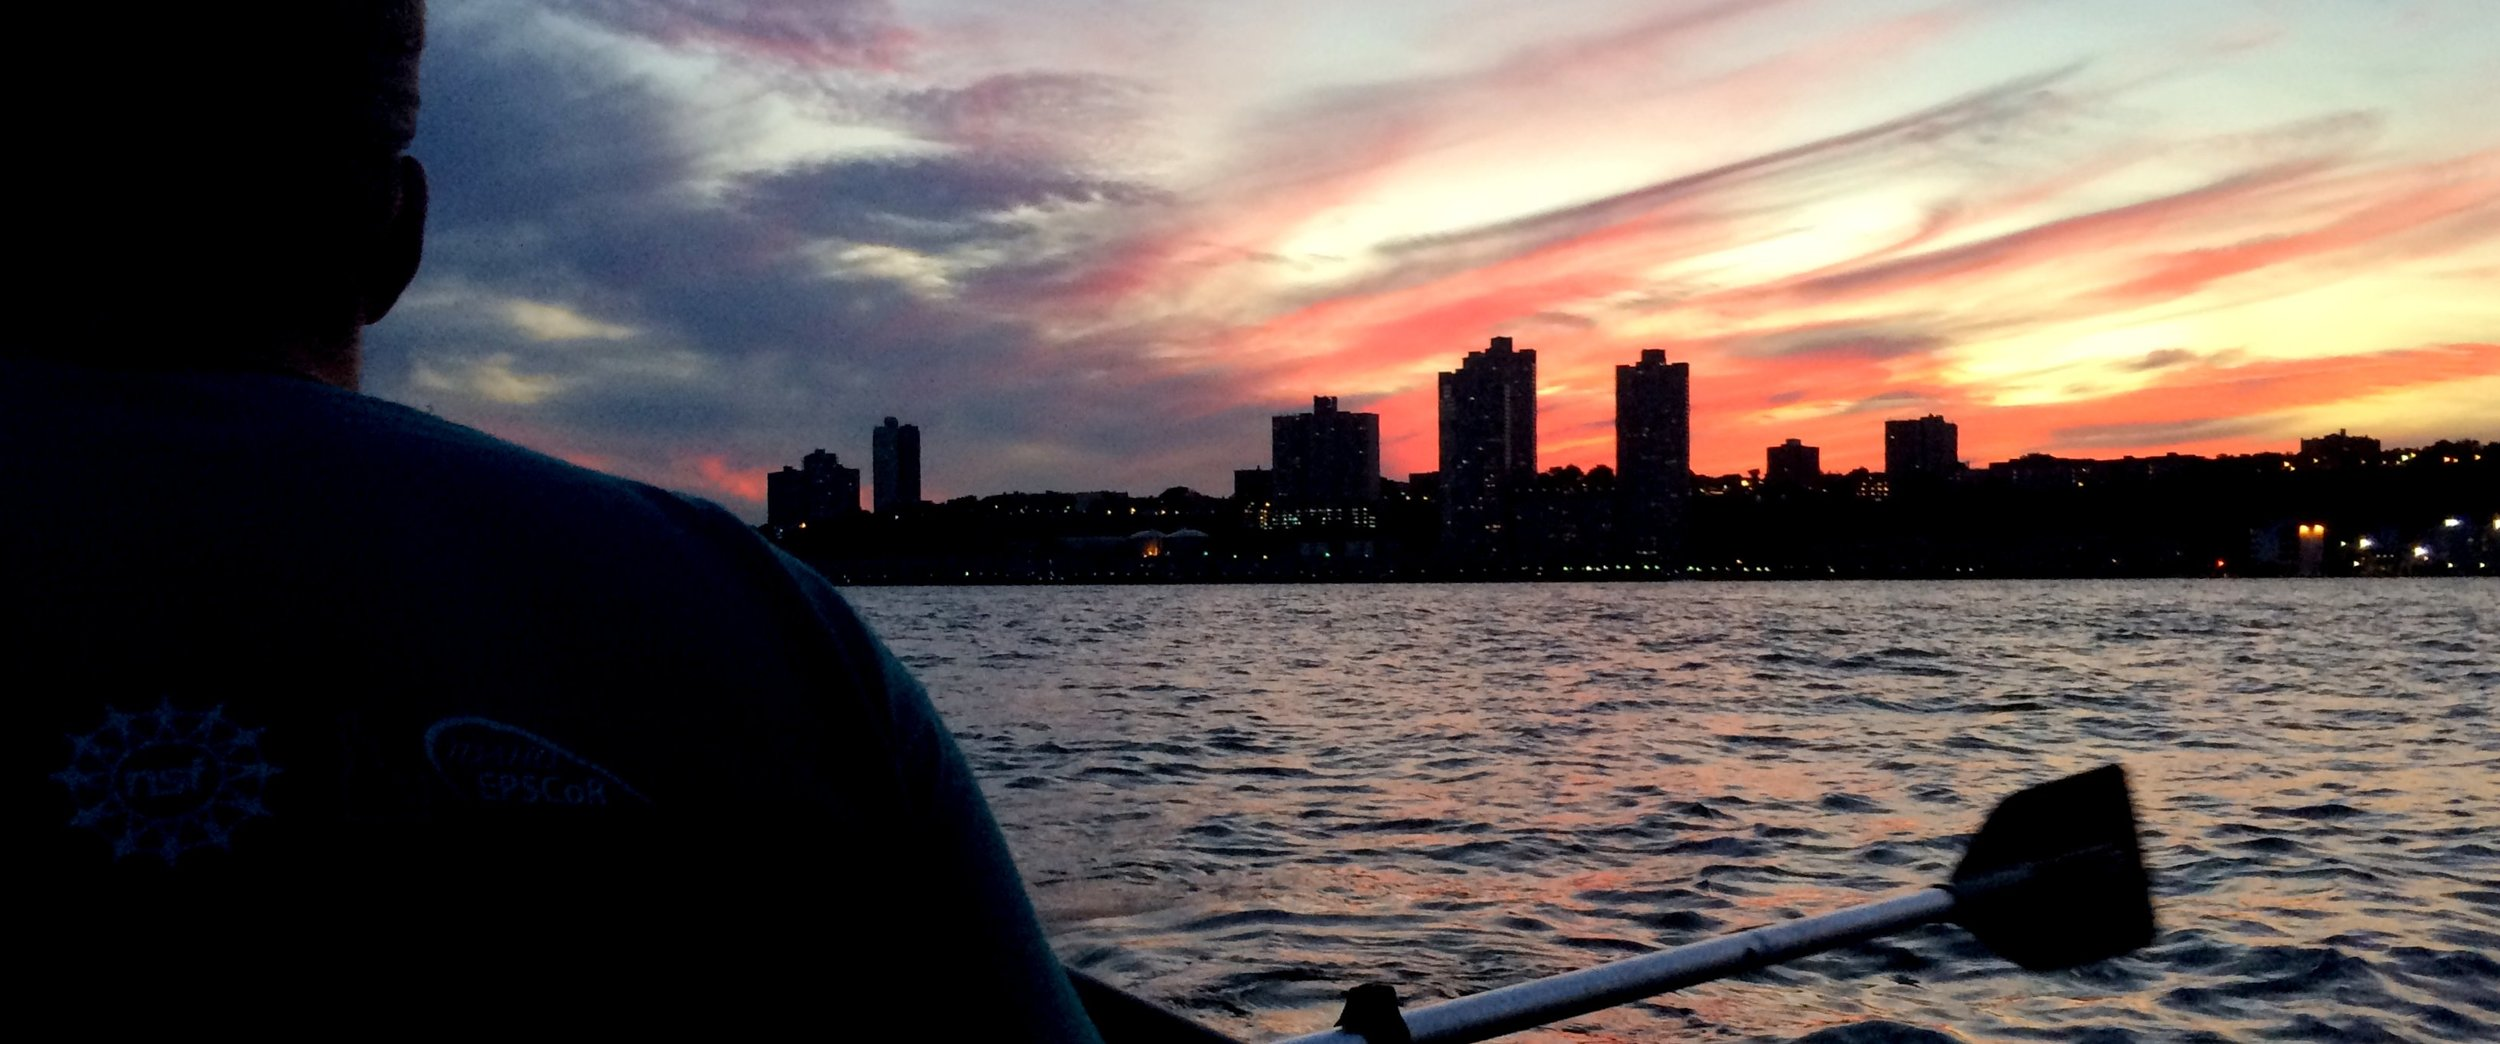 An American Flag sunset seen from our dinghy on the Hudson River last September.